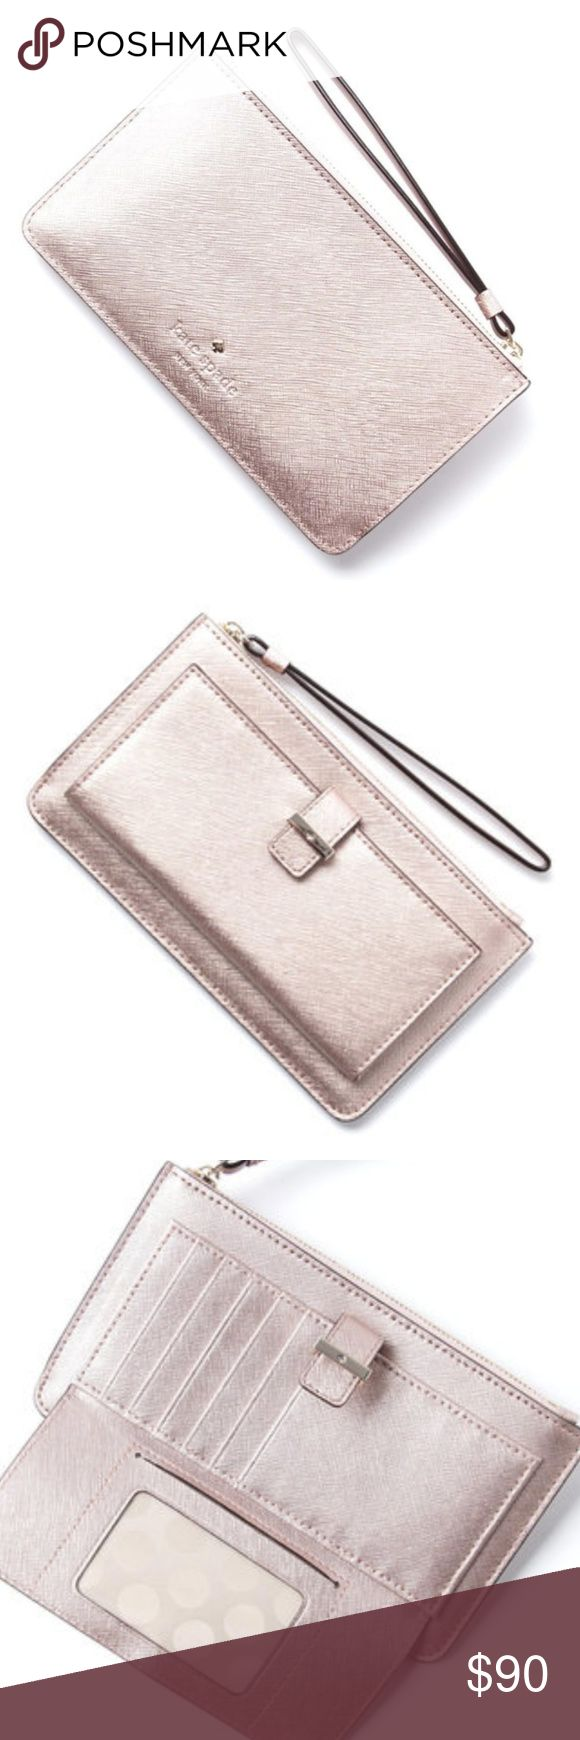 Kate Spade Rose Gold Karolina Pre-owned. Used for two weeks! Signs of normal everyday use on hardware. 4.1 in. X 7.2 in. X 0 in.    * I consider the wear of every item and price accordingly. Please consider this too as you make an offer.   * Please don't forget Poshmark takes 20% of sales. kate spade Bags Clutches & Wristlets